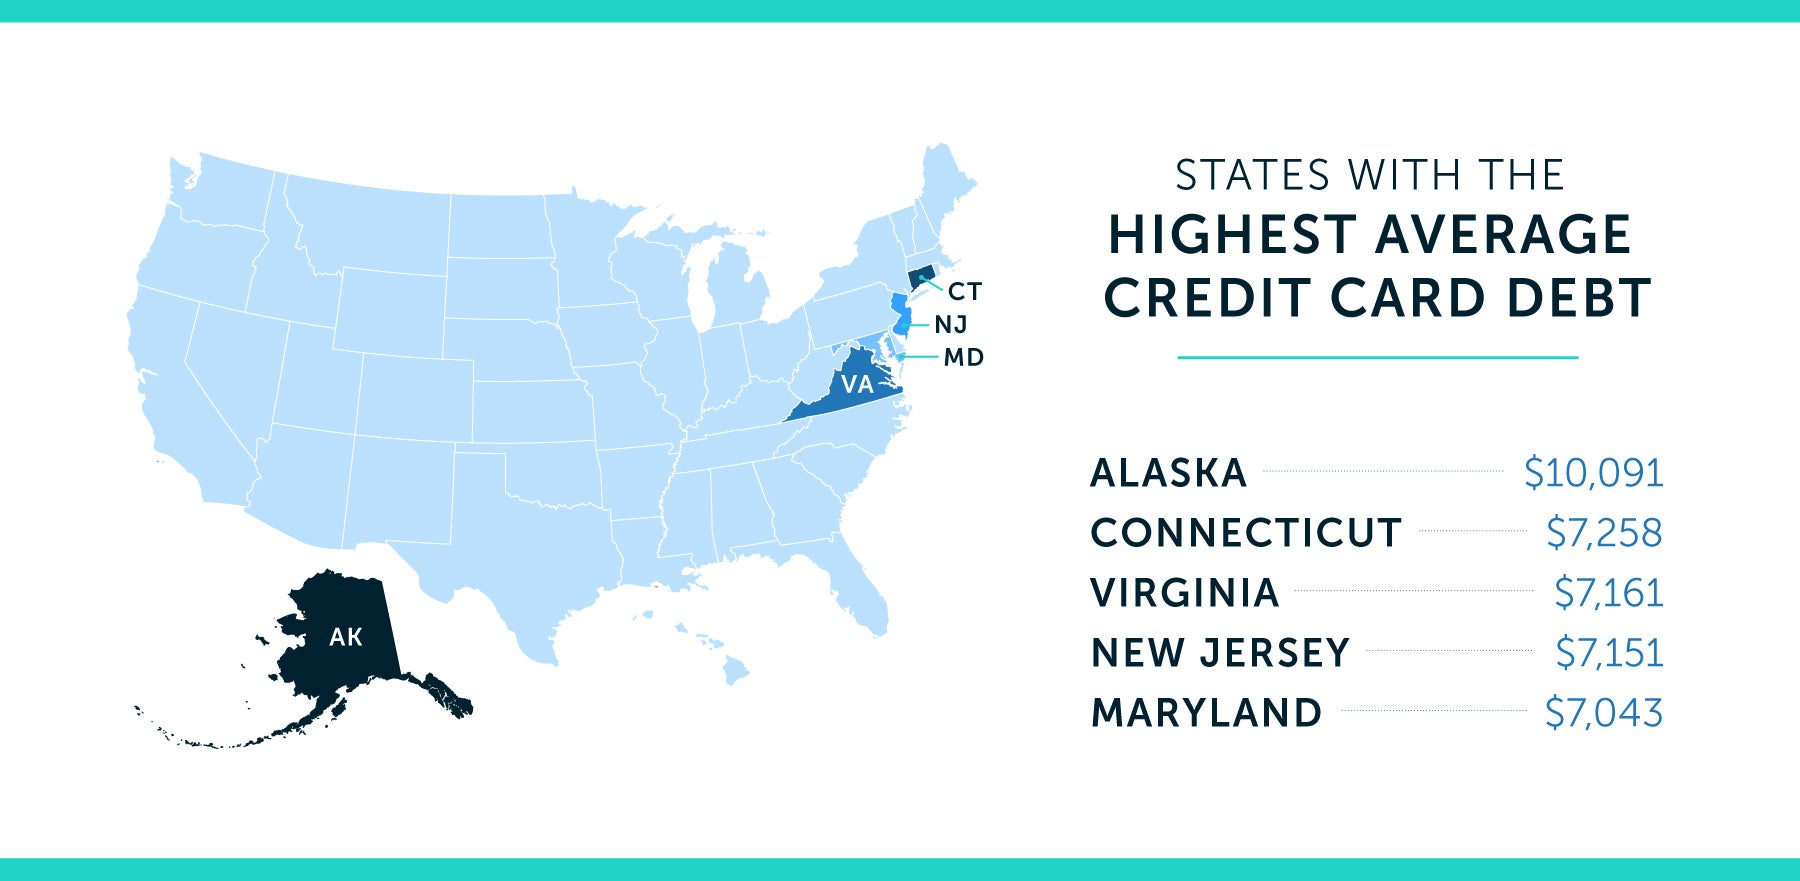 states with the highest average credit card debt